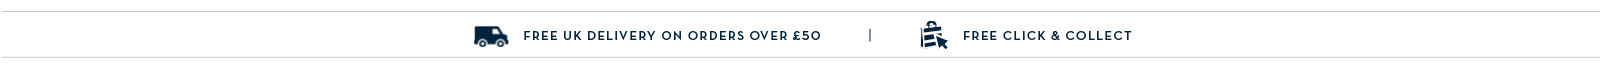 Free Delivery when you spend £50. Free Click & Collect